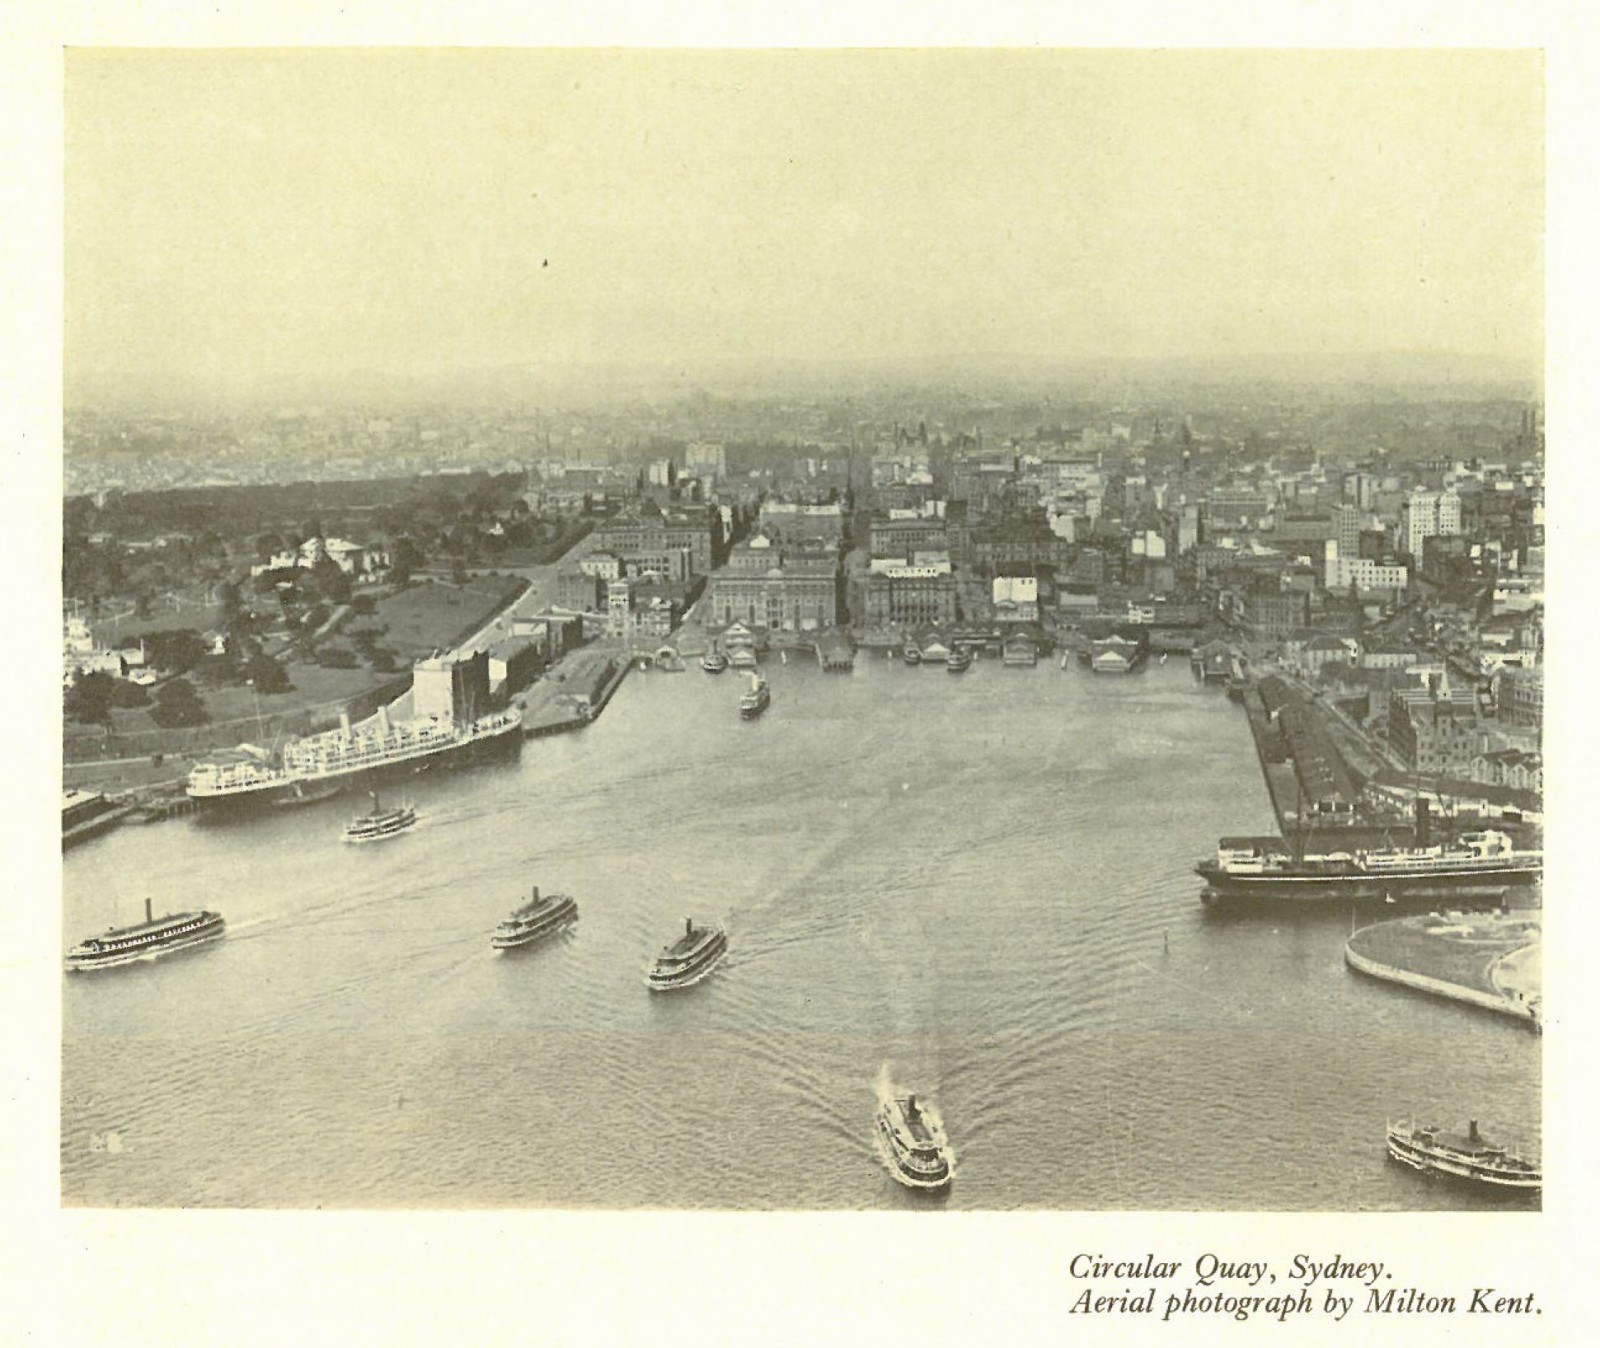 City of Sydney from above, circa early 1920's (Source: Australia Beautiful 1928, Photograph by Milton Kent)